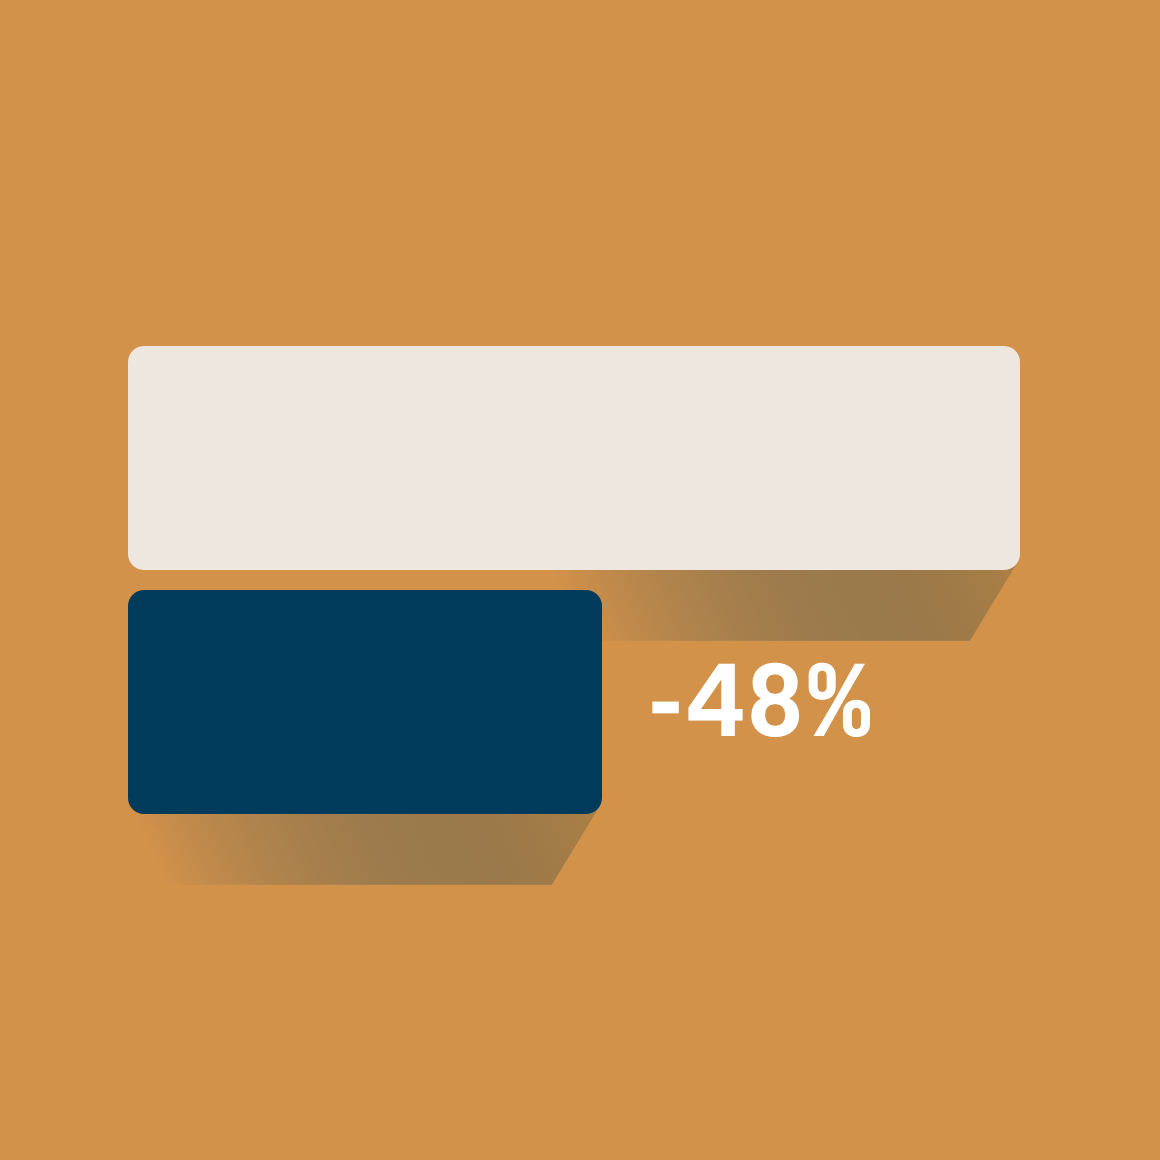 Bar graph showing a 48% decrease in bounce rate